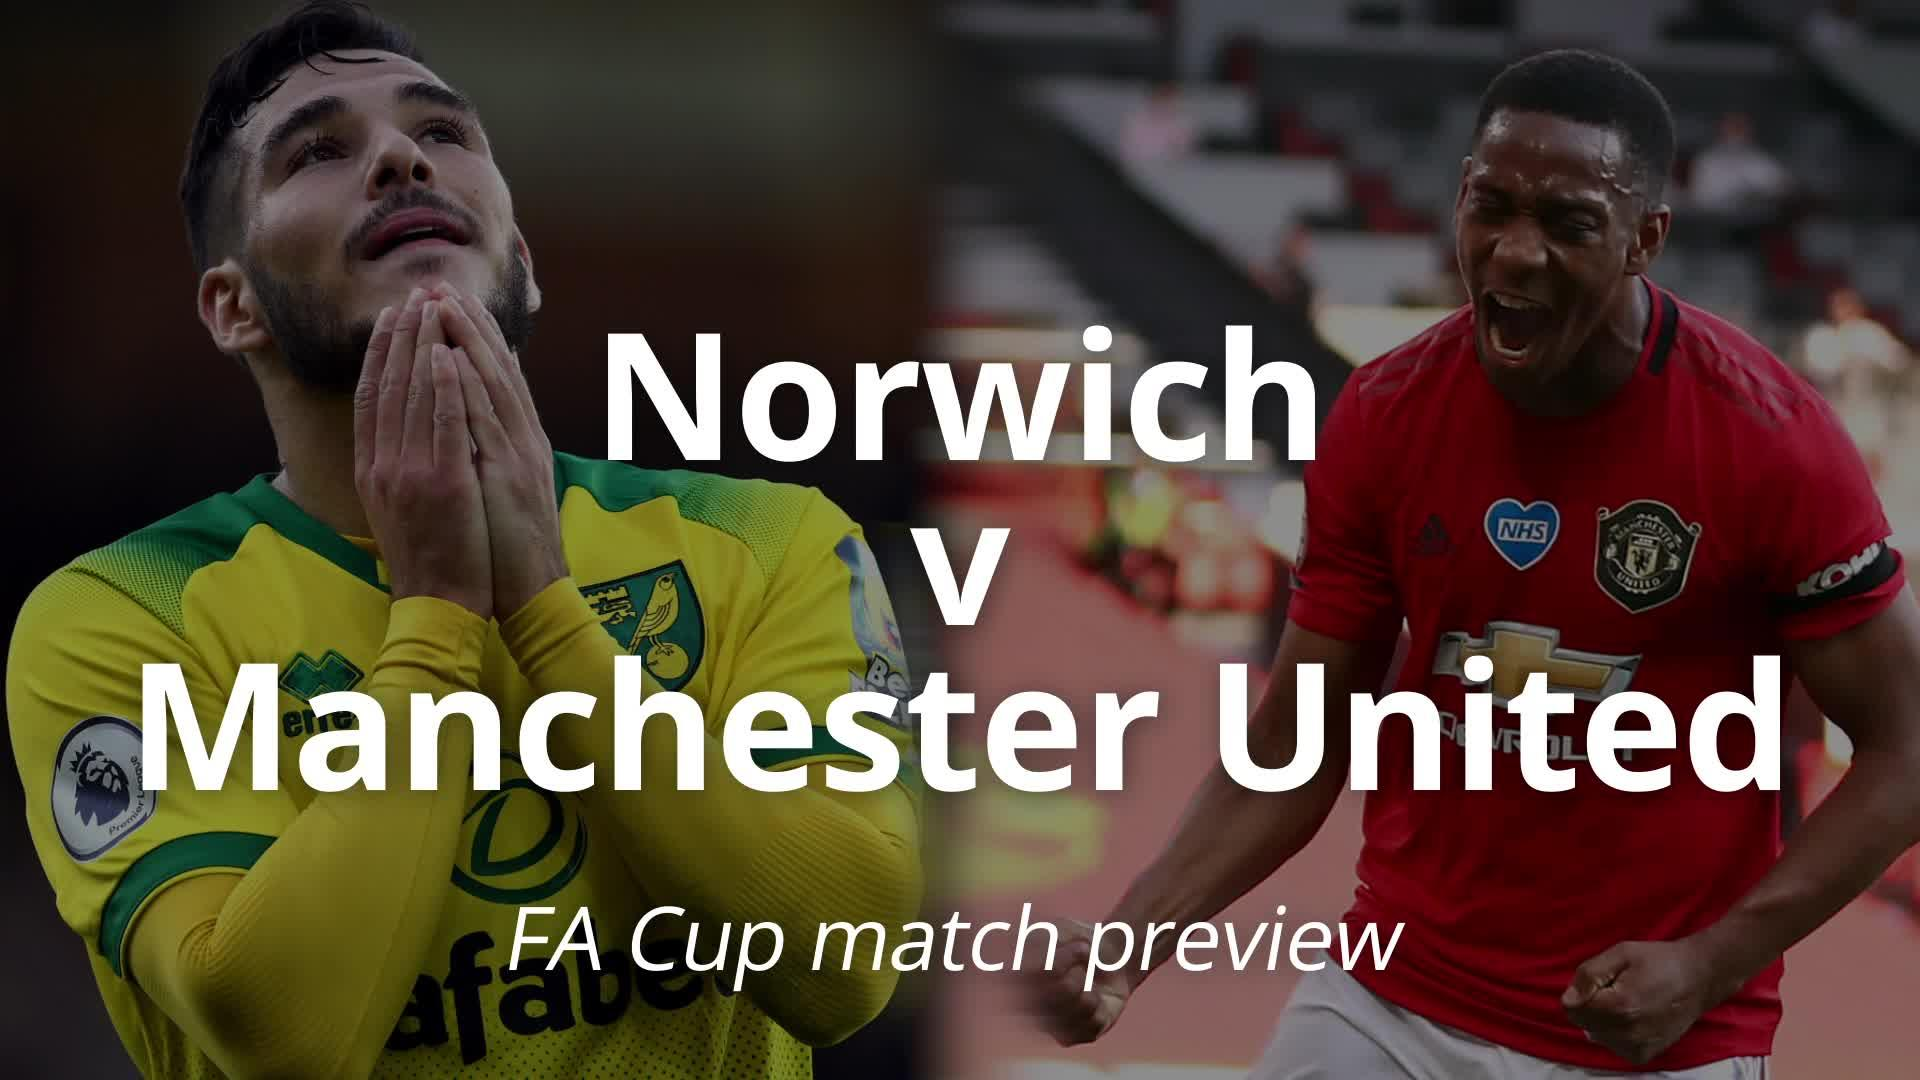 FA Cup match preview: Norwich v Manchester United